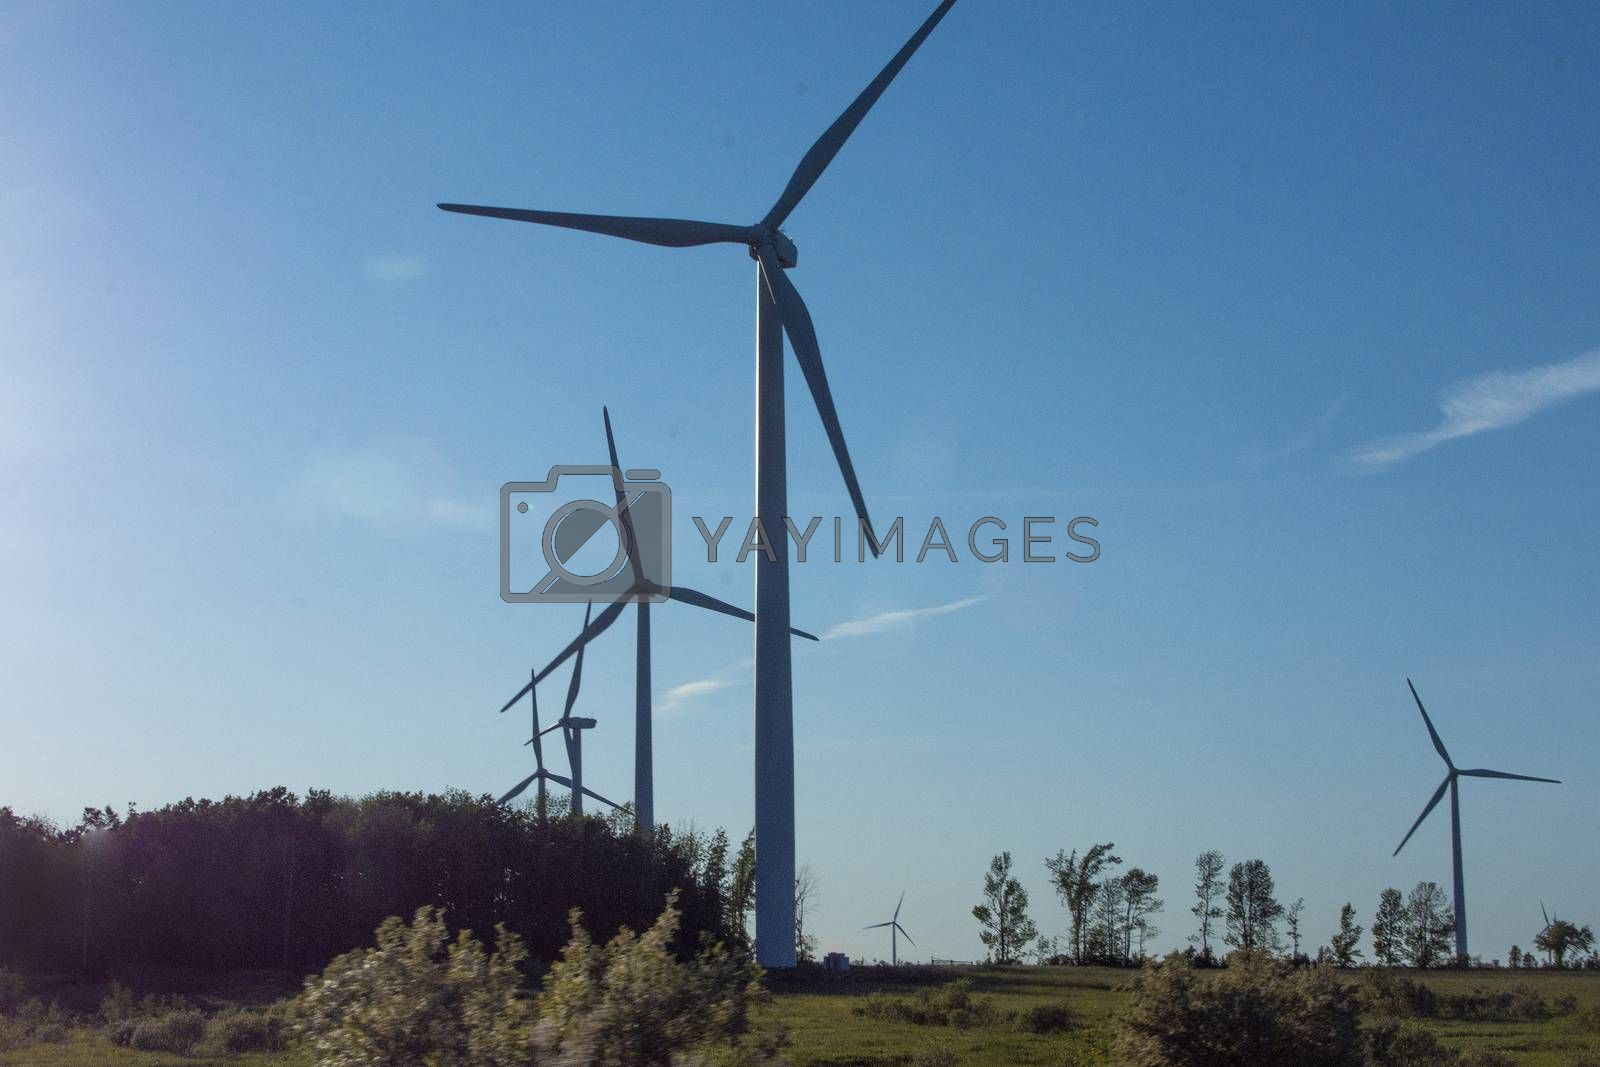 Wind turbine groups installed in open and leeward areas